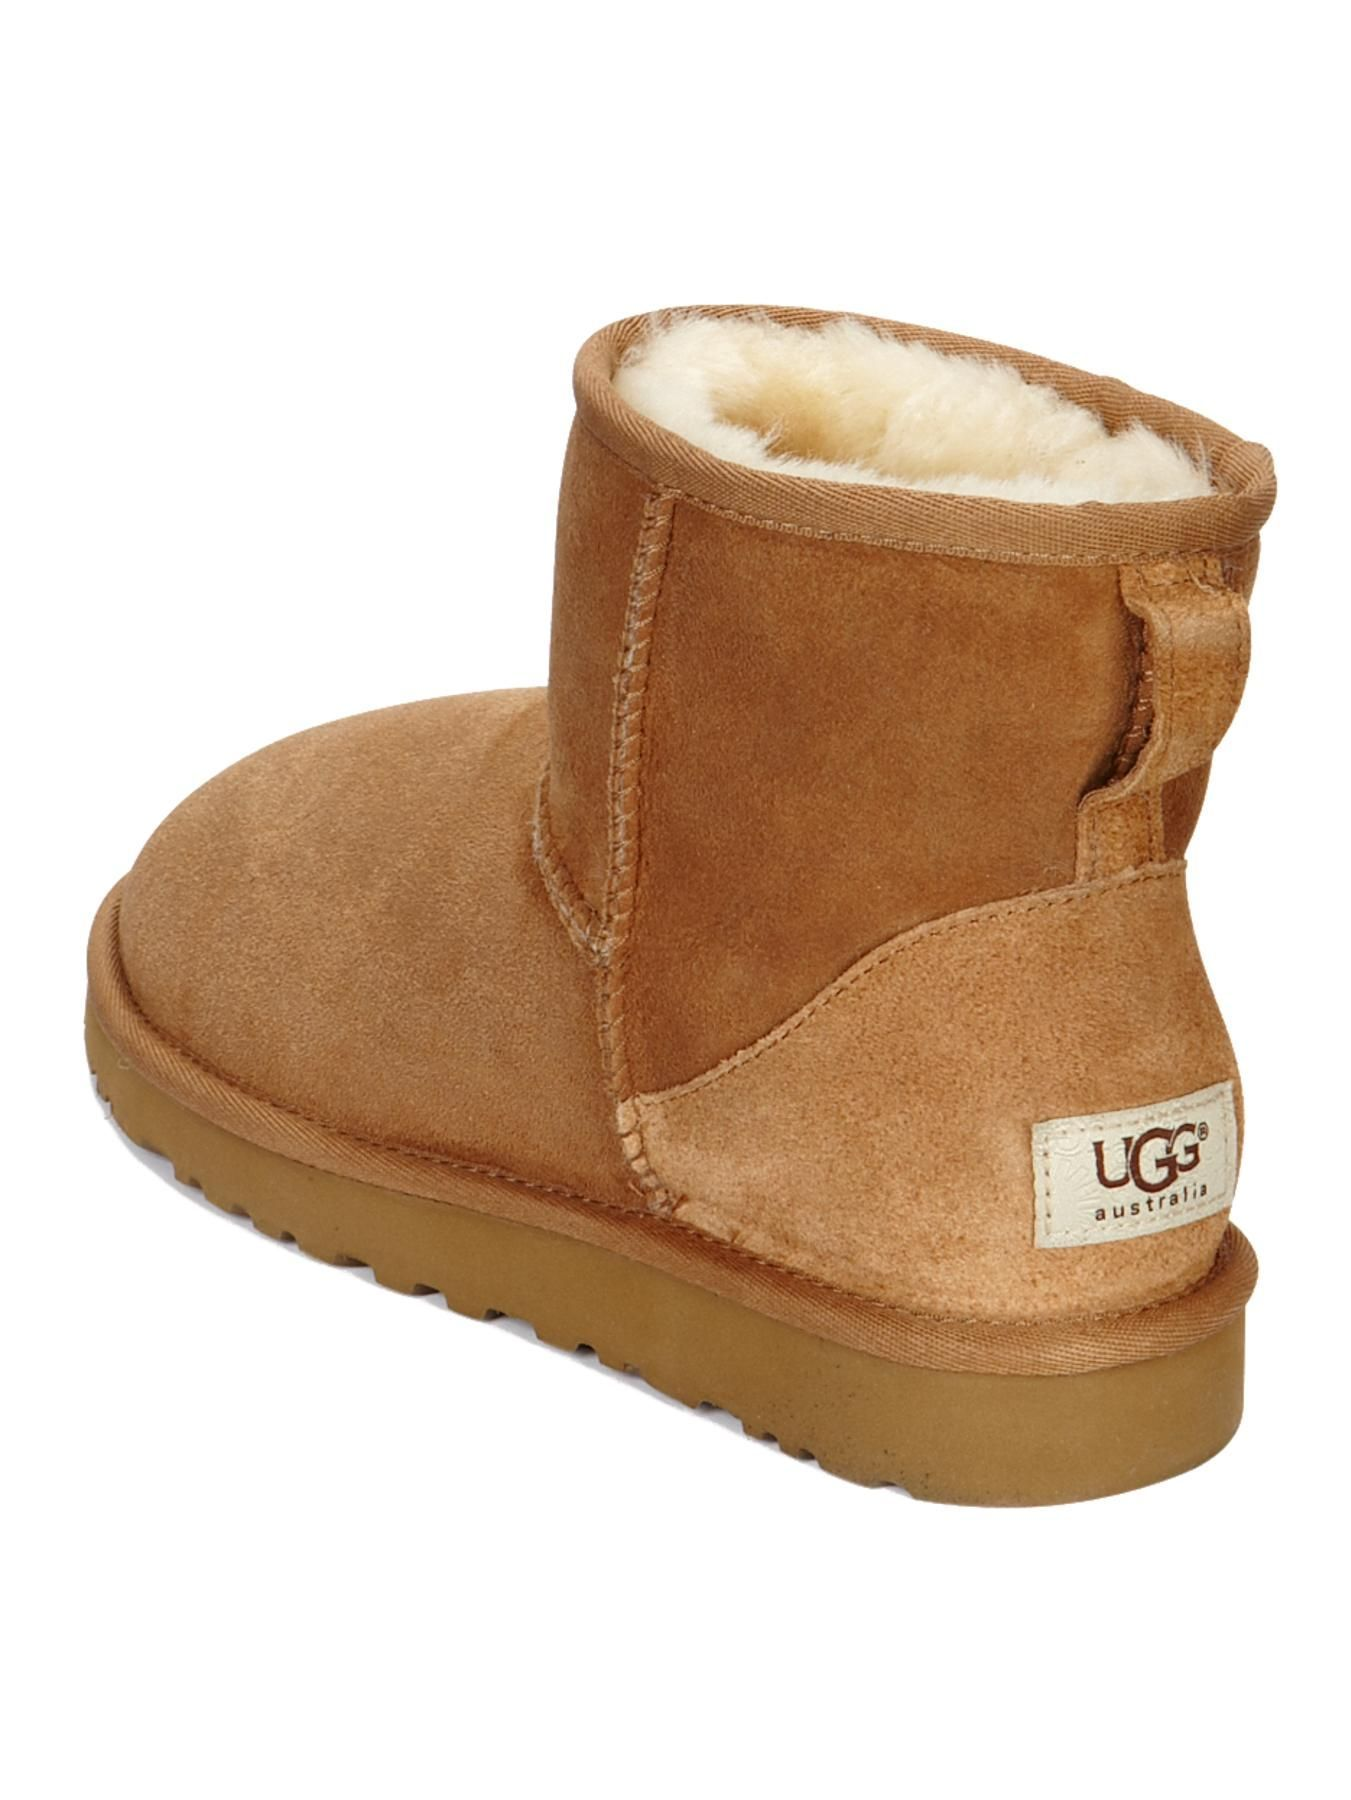 96406451f4c Ugg Classic Mini Ankle Boots - Chestnut. | ugg outfit in 2019 | Ugg ...